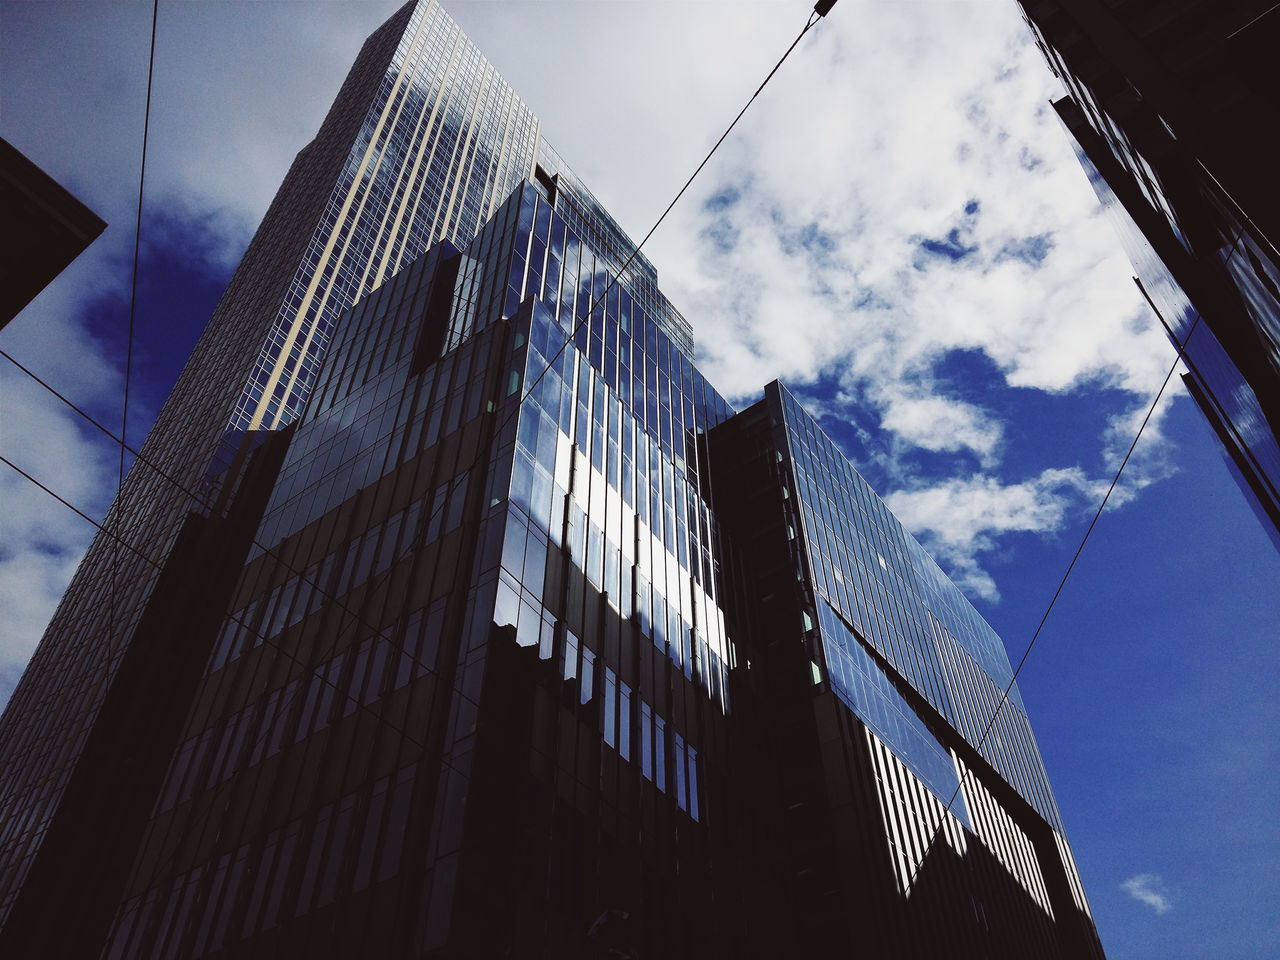 low angle view, architecture, building exterior, modern, built structure, sky, skyscraper, day, outdoors, no people